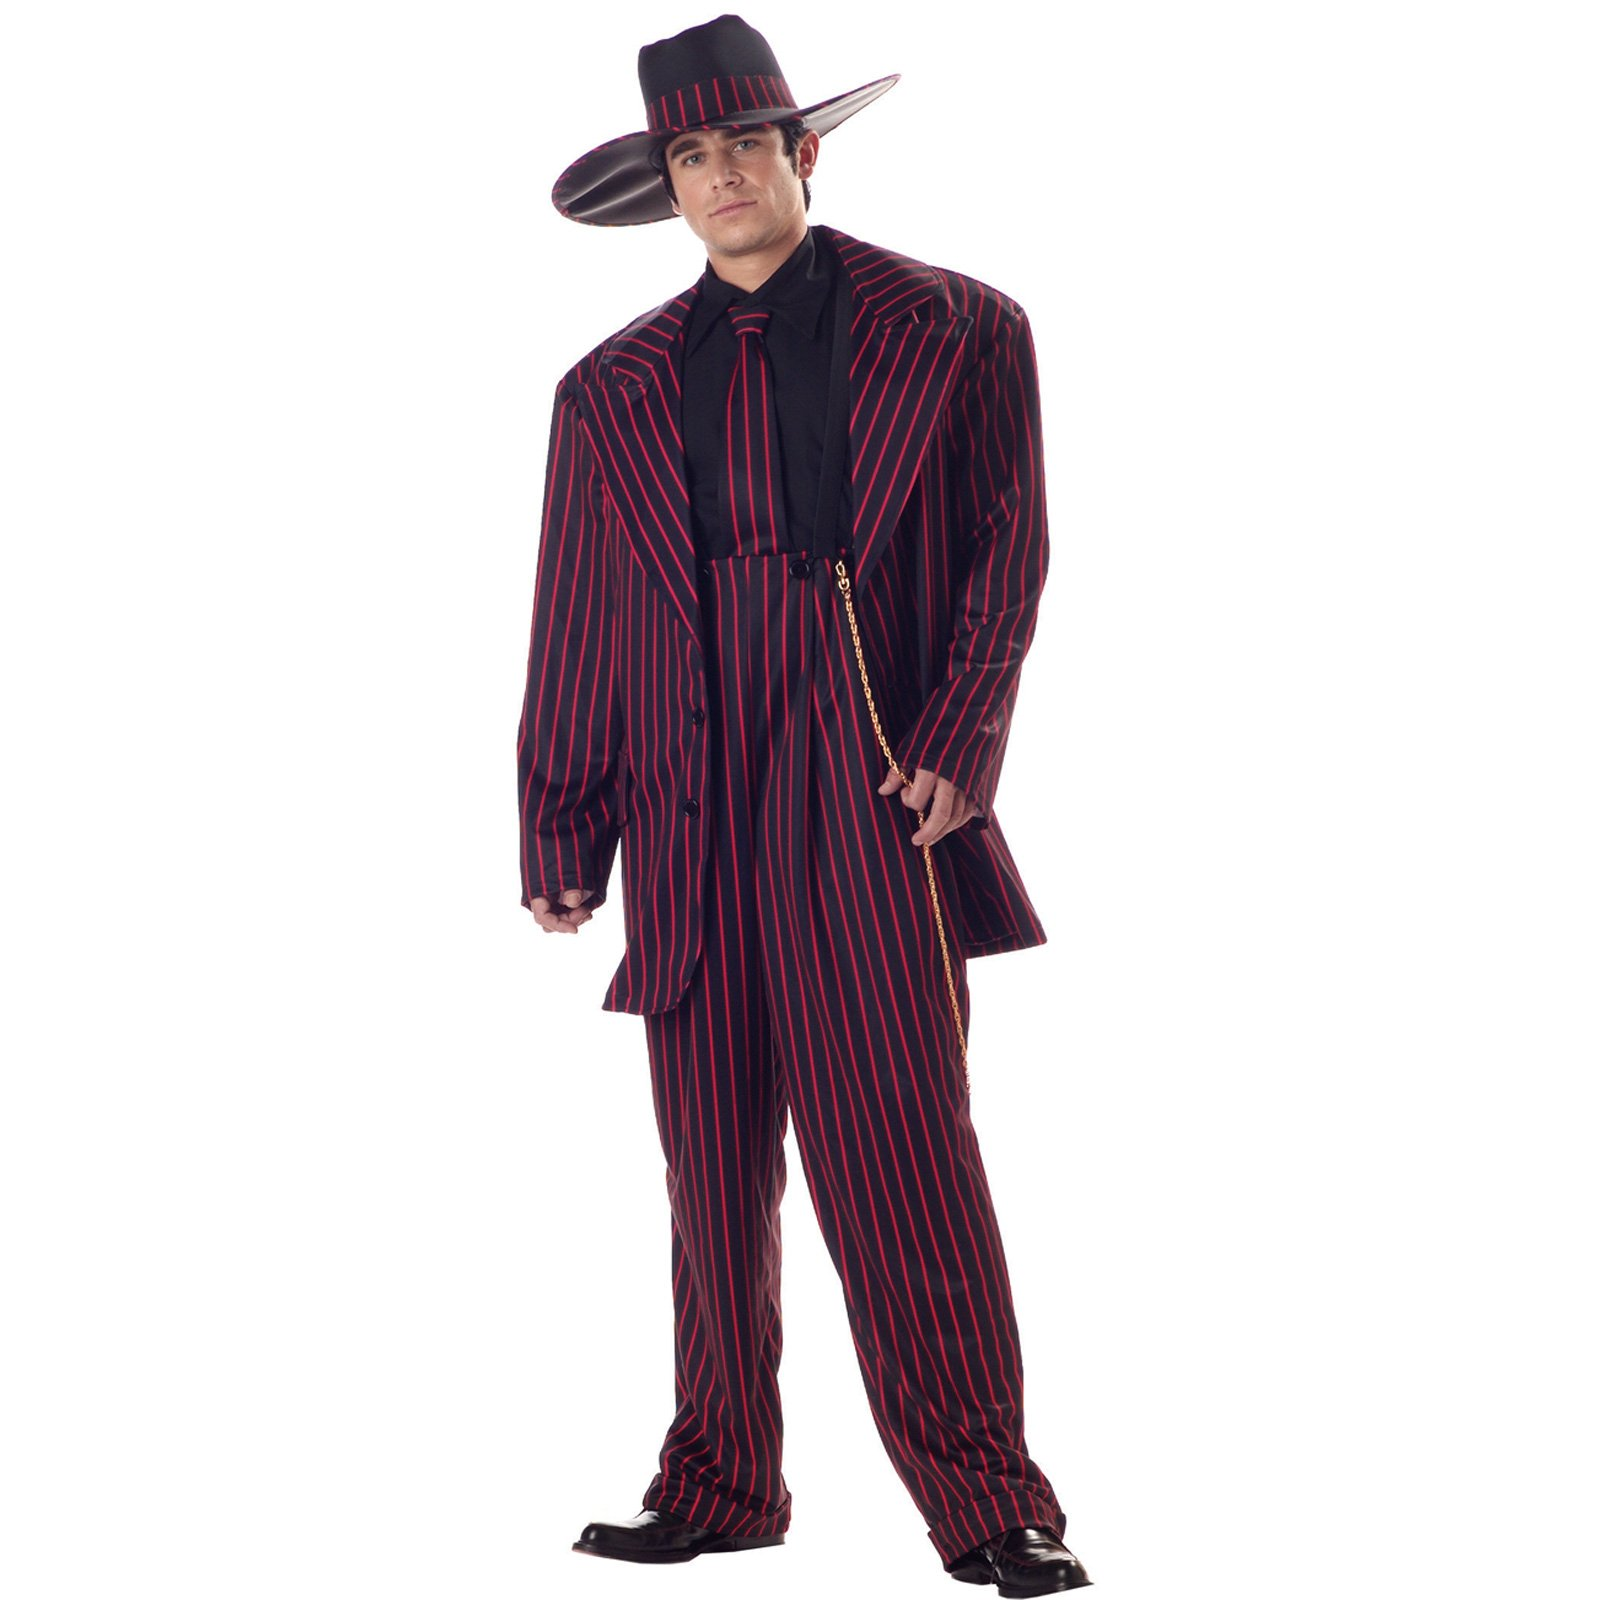 Zoot suit fashion history